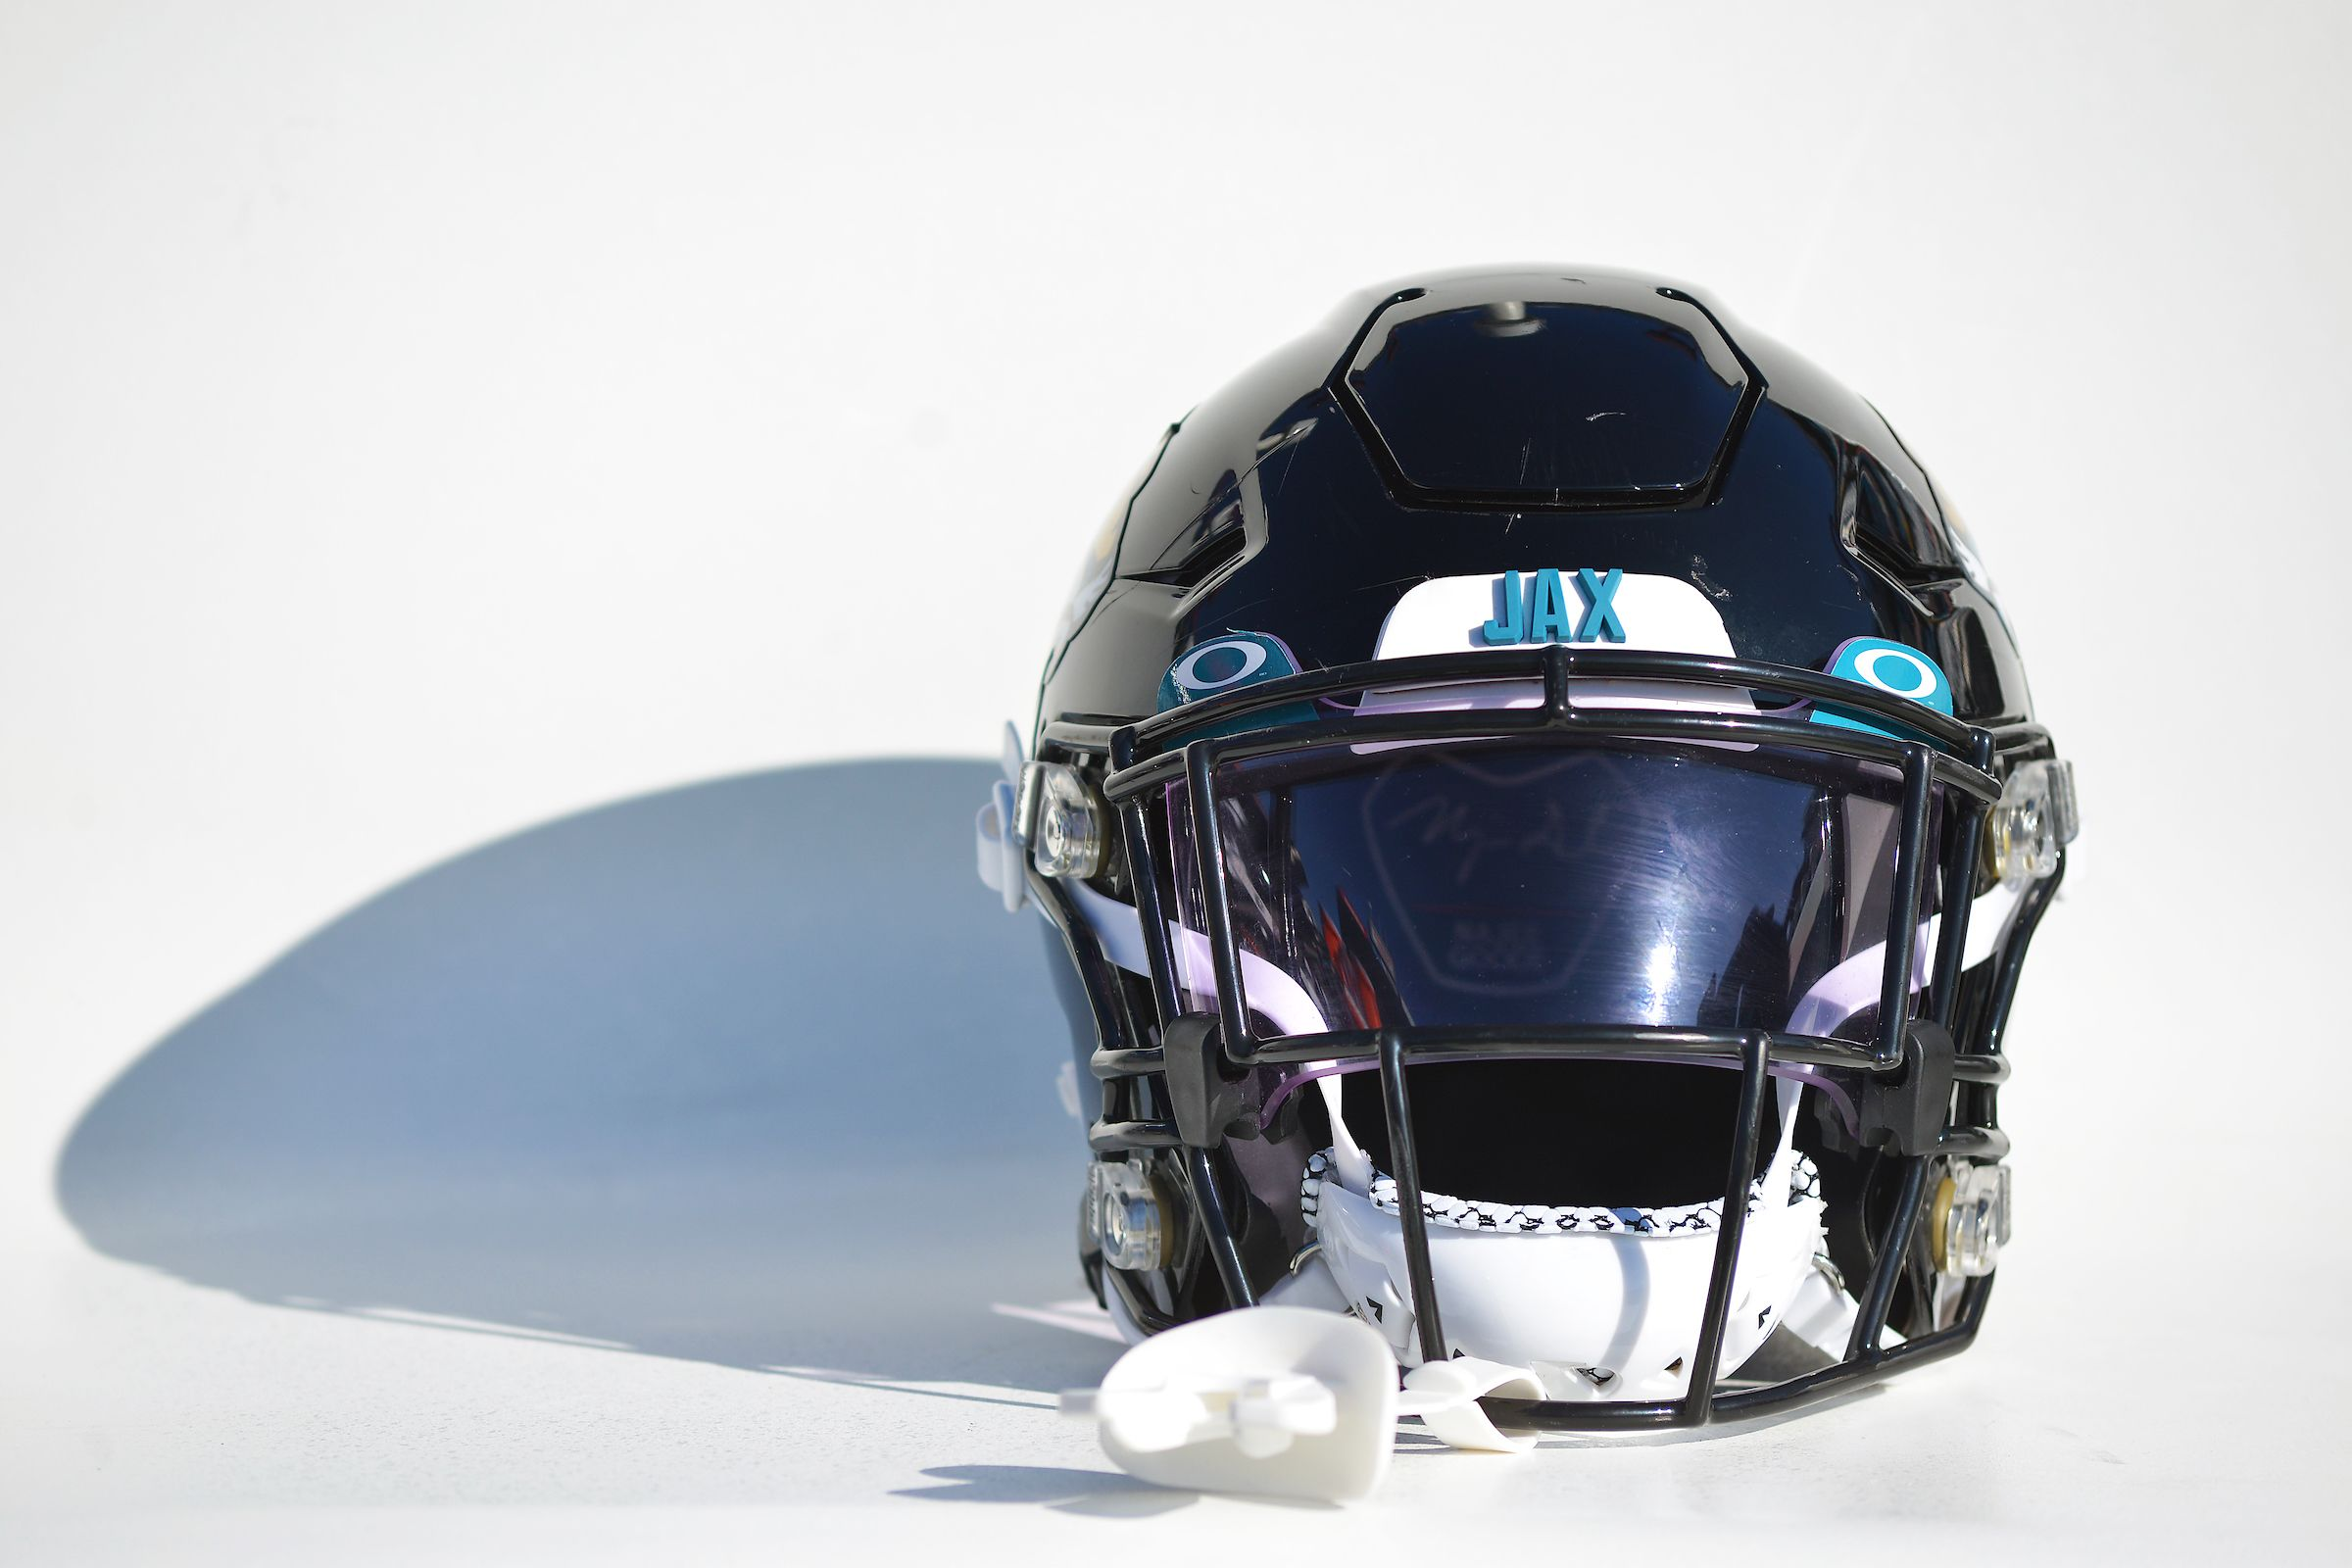 A Jacksonville Jaguars helmet rests on the bench before pregame warm-ups against the Tennessee Titans in an NFL game, Sunday, Nov. 24, 2019 in Nashville, TN.  (Rick Wilson/Jacksonville Jaguars)